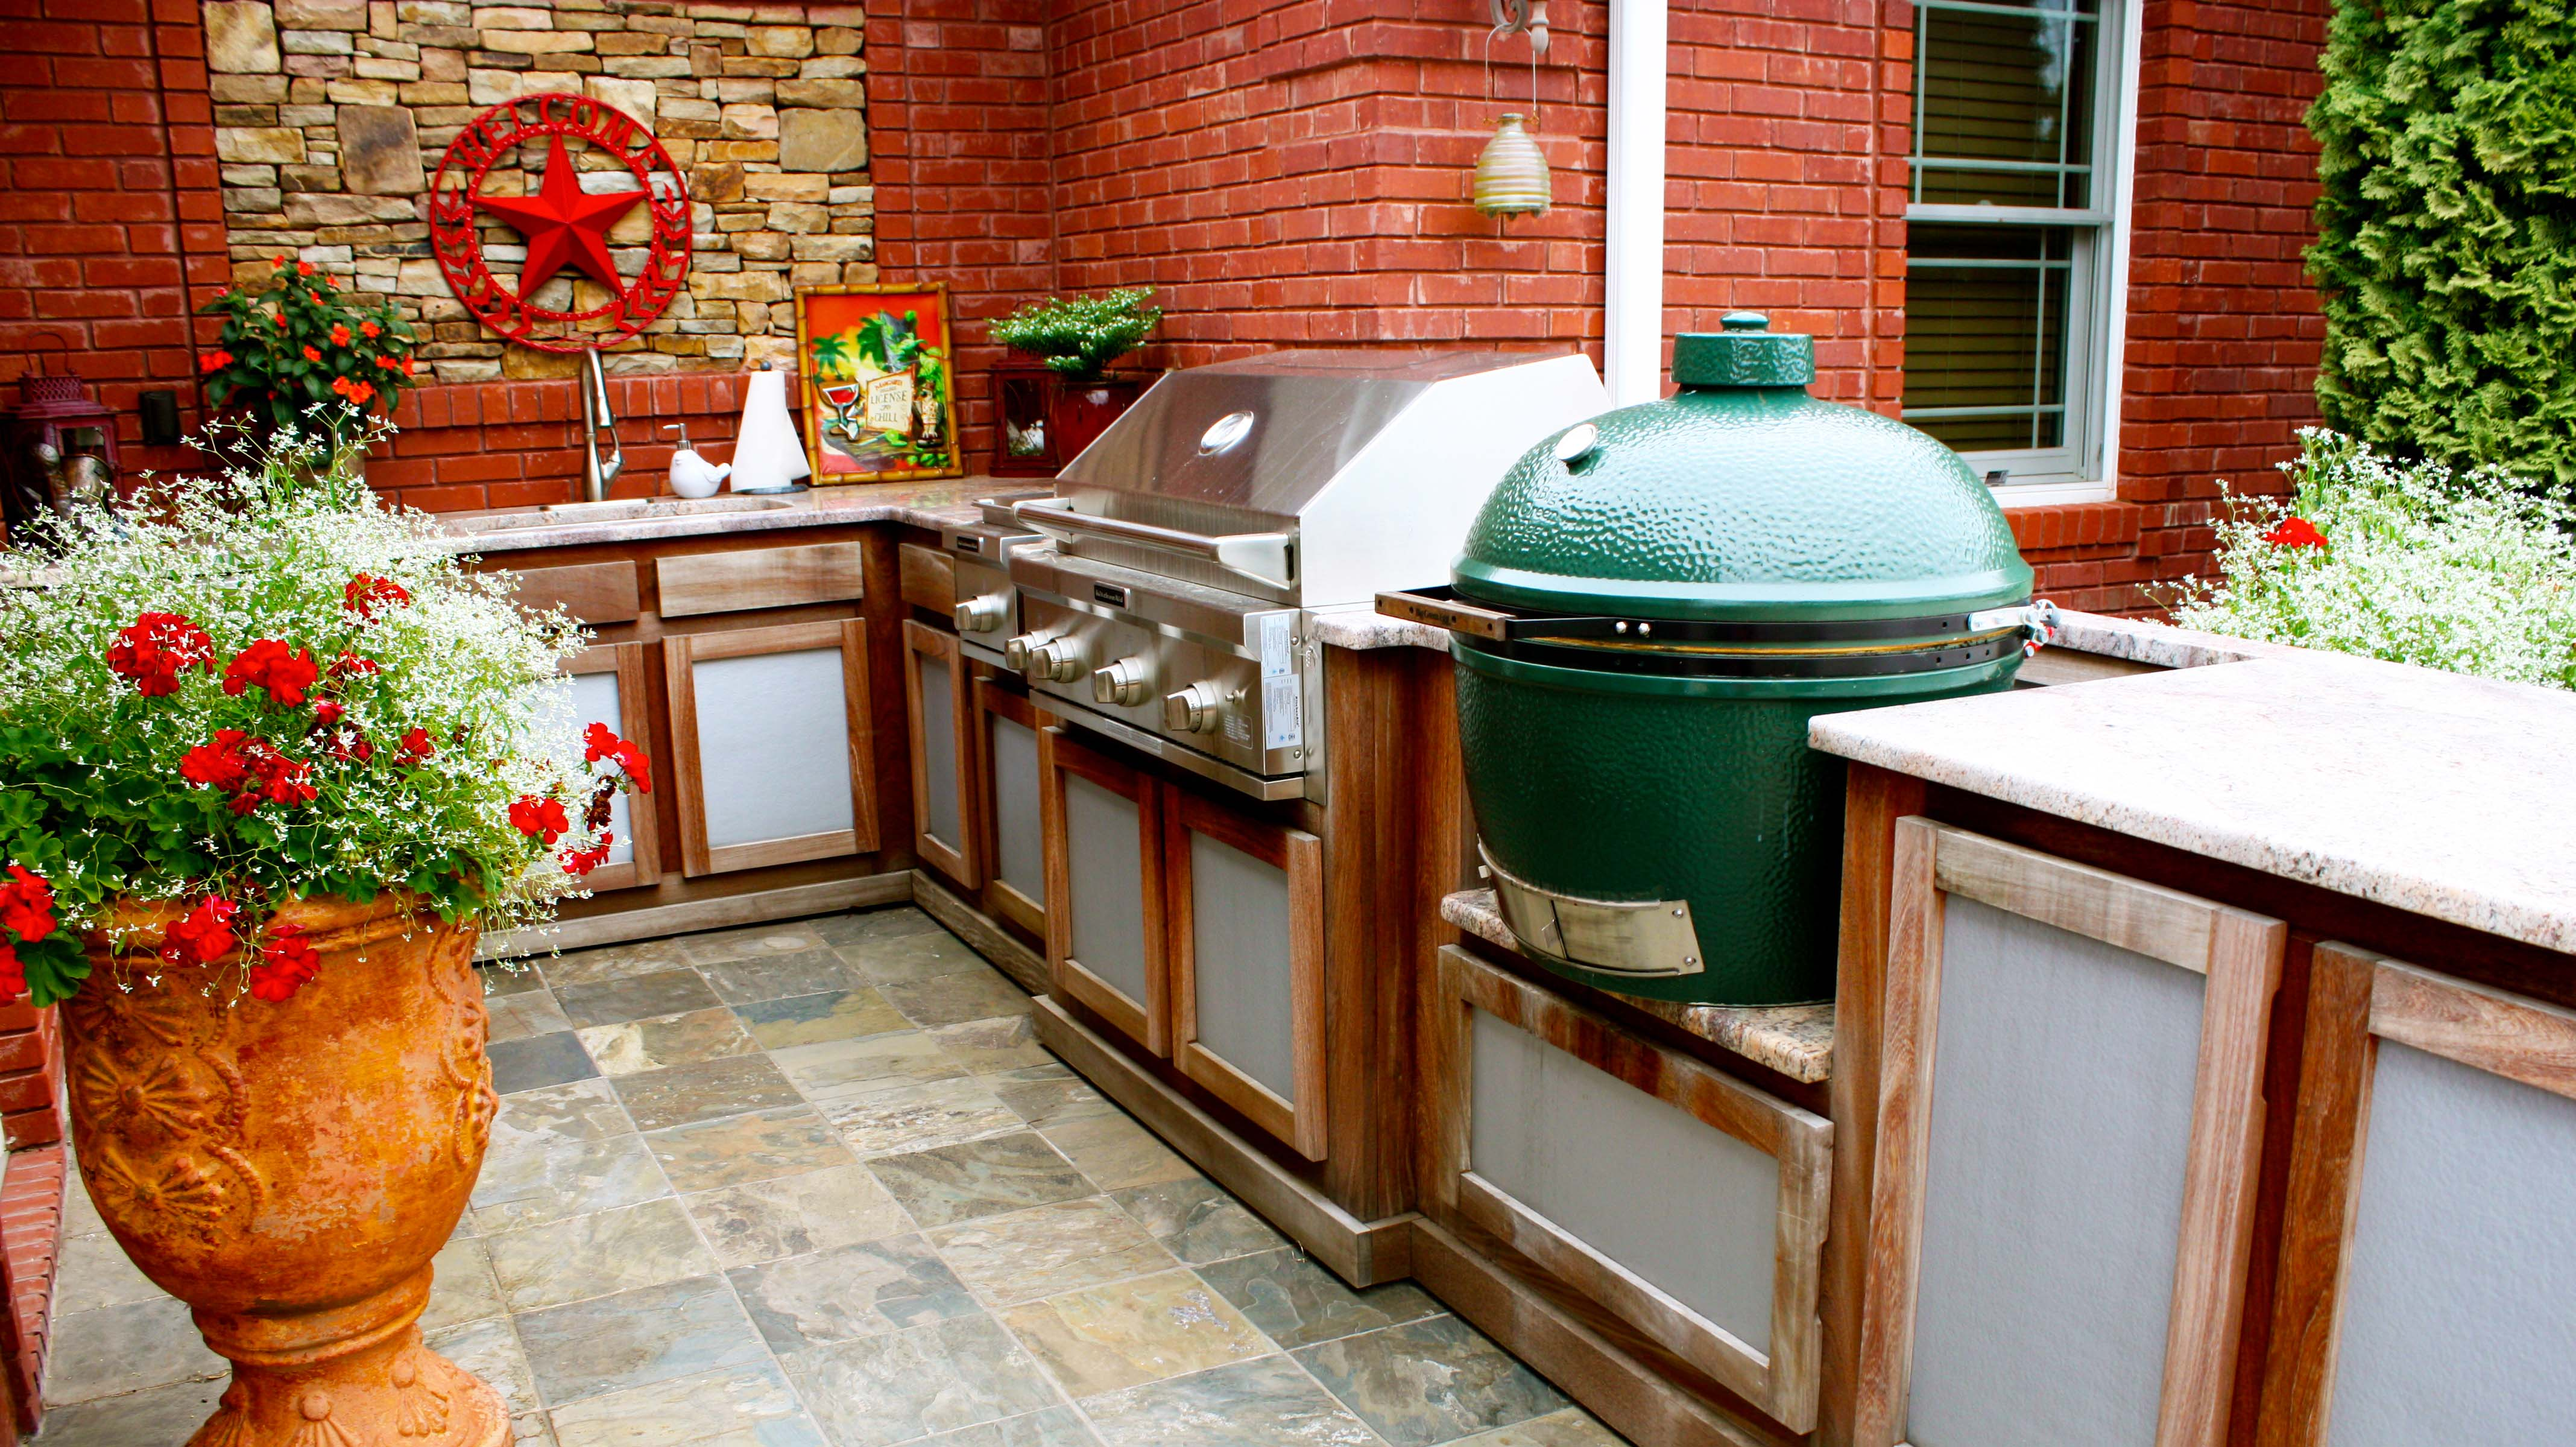 Best Backyard Kitchen Designs | Roy Home Design on Built In Grill Backyard id=92213